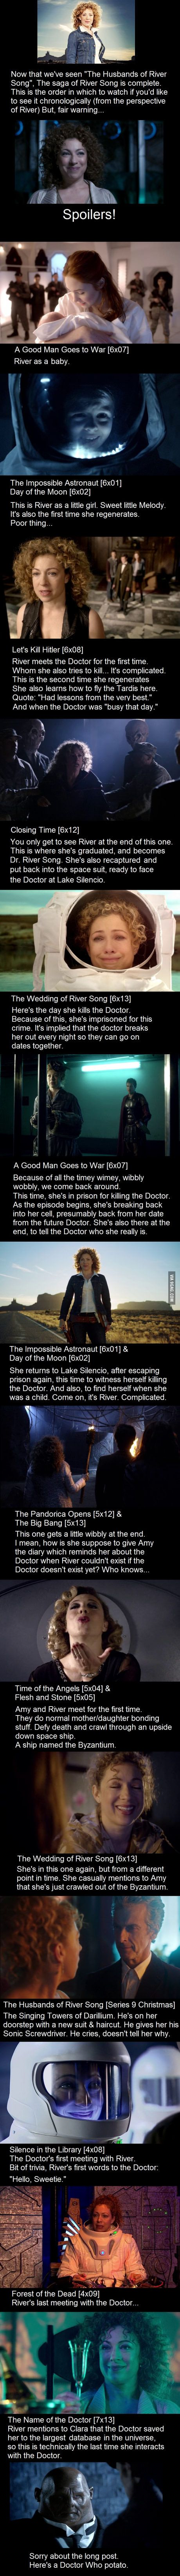 River Song's Timeline. Watch in this order if you'd like to see River's journey in Doctor Who.